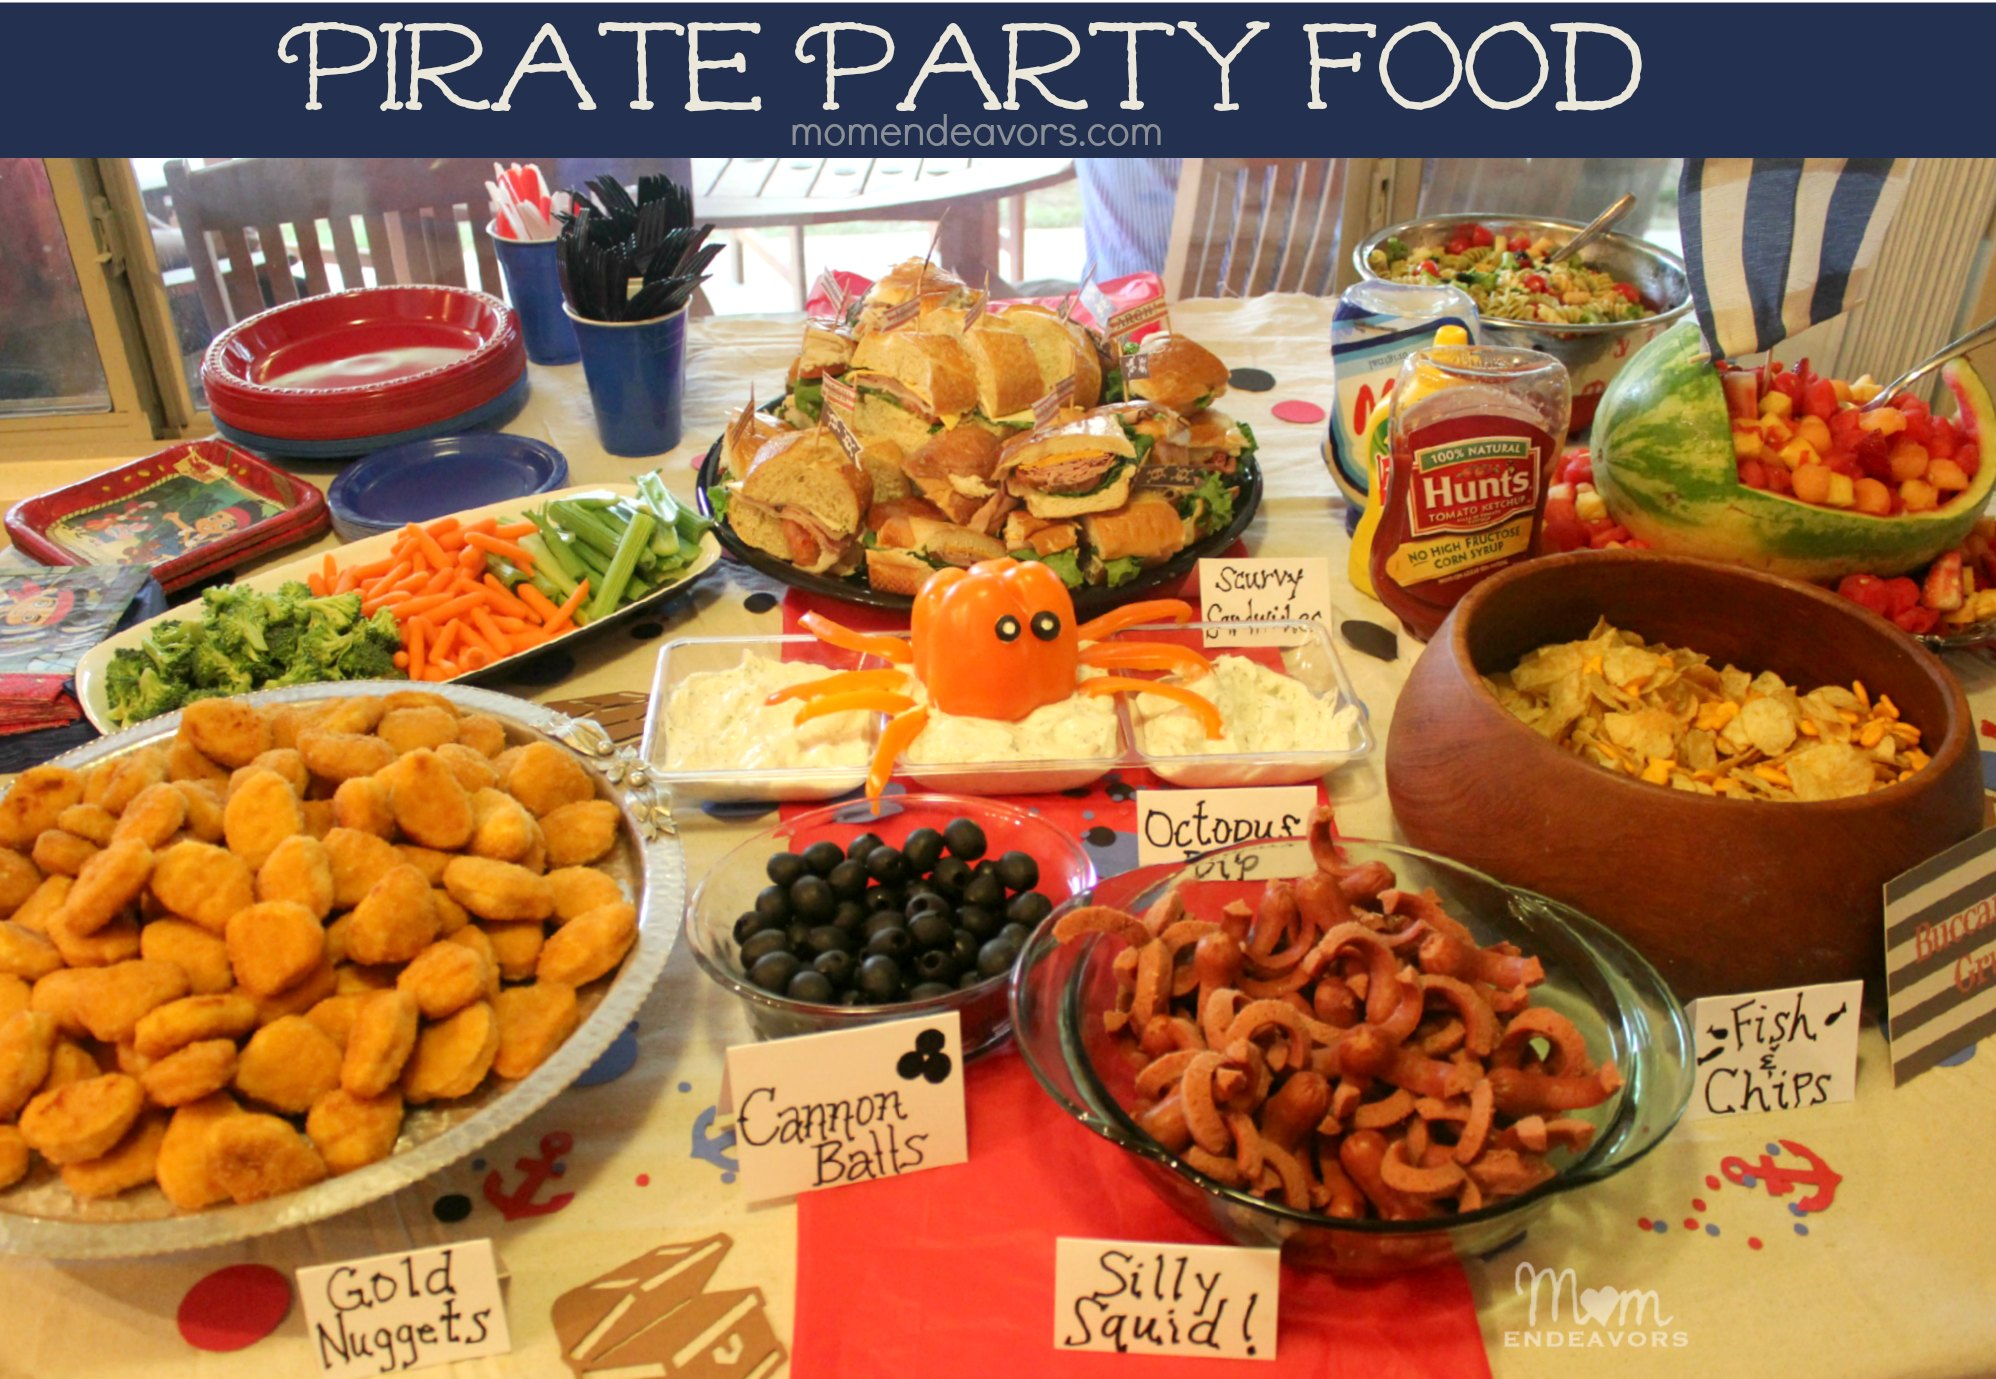 Jake and the Never Land Pirates Party Food Table